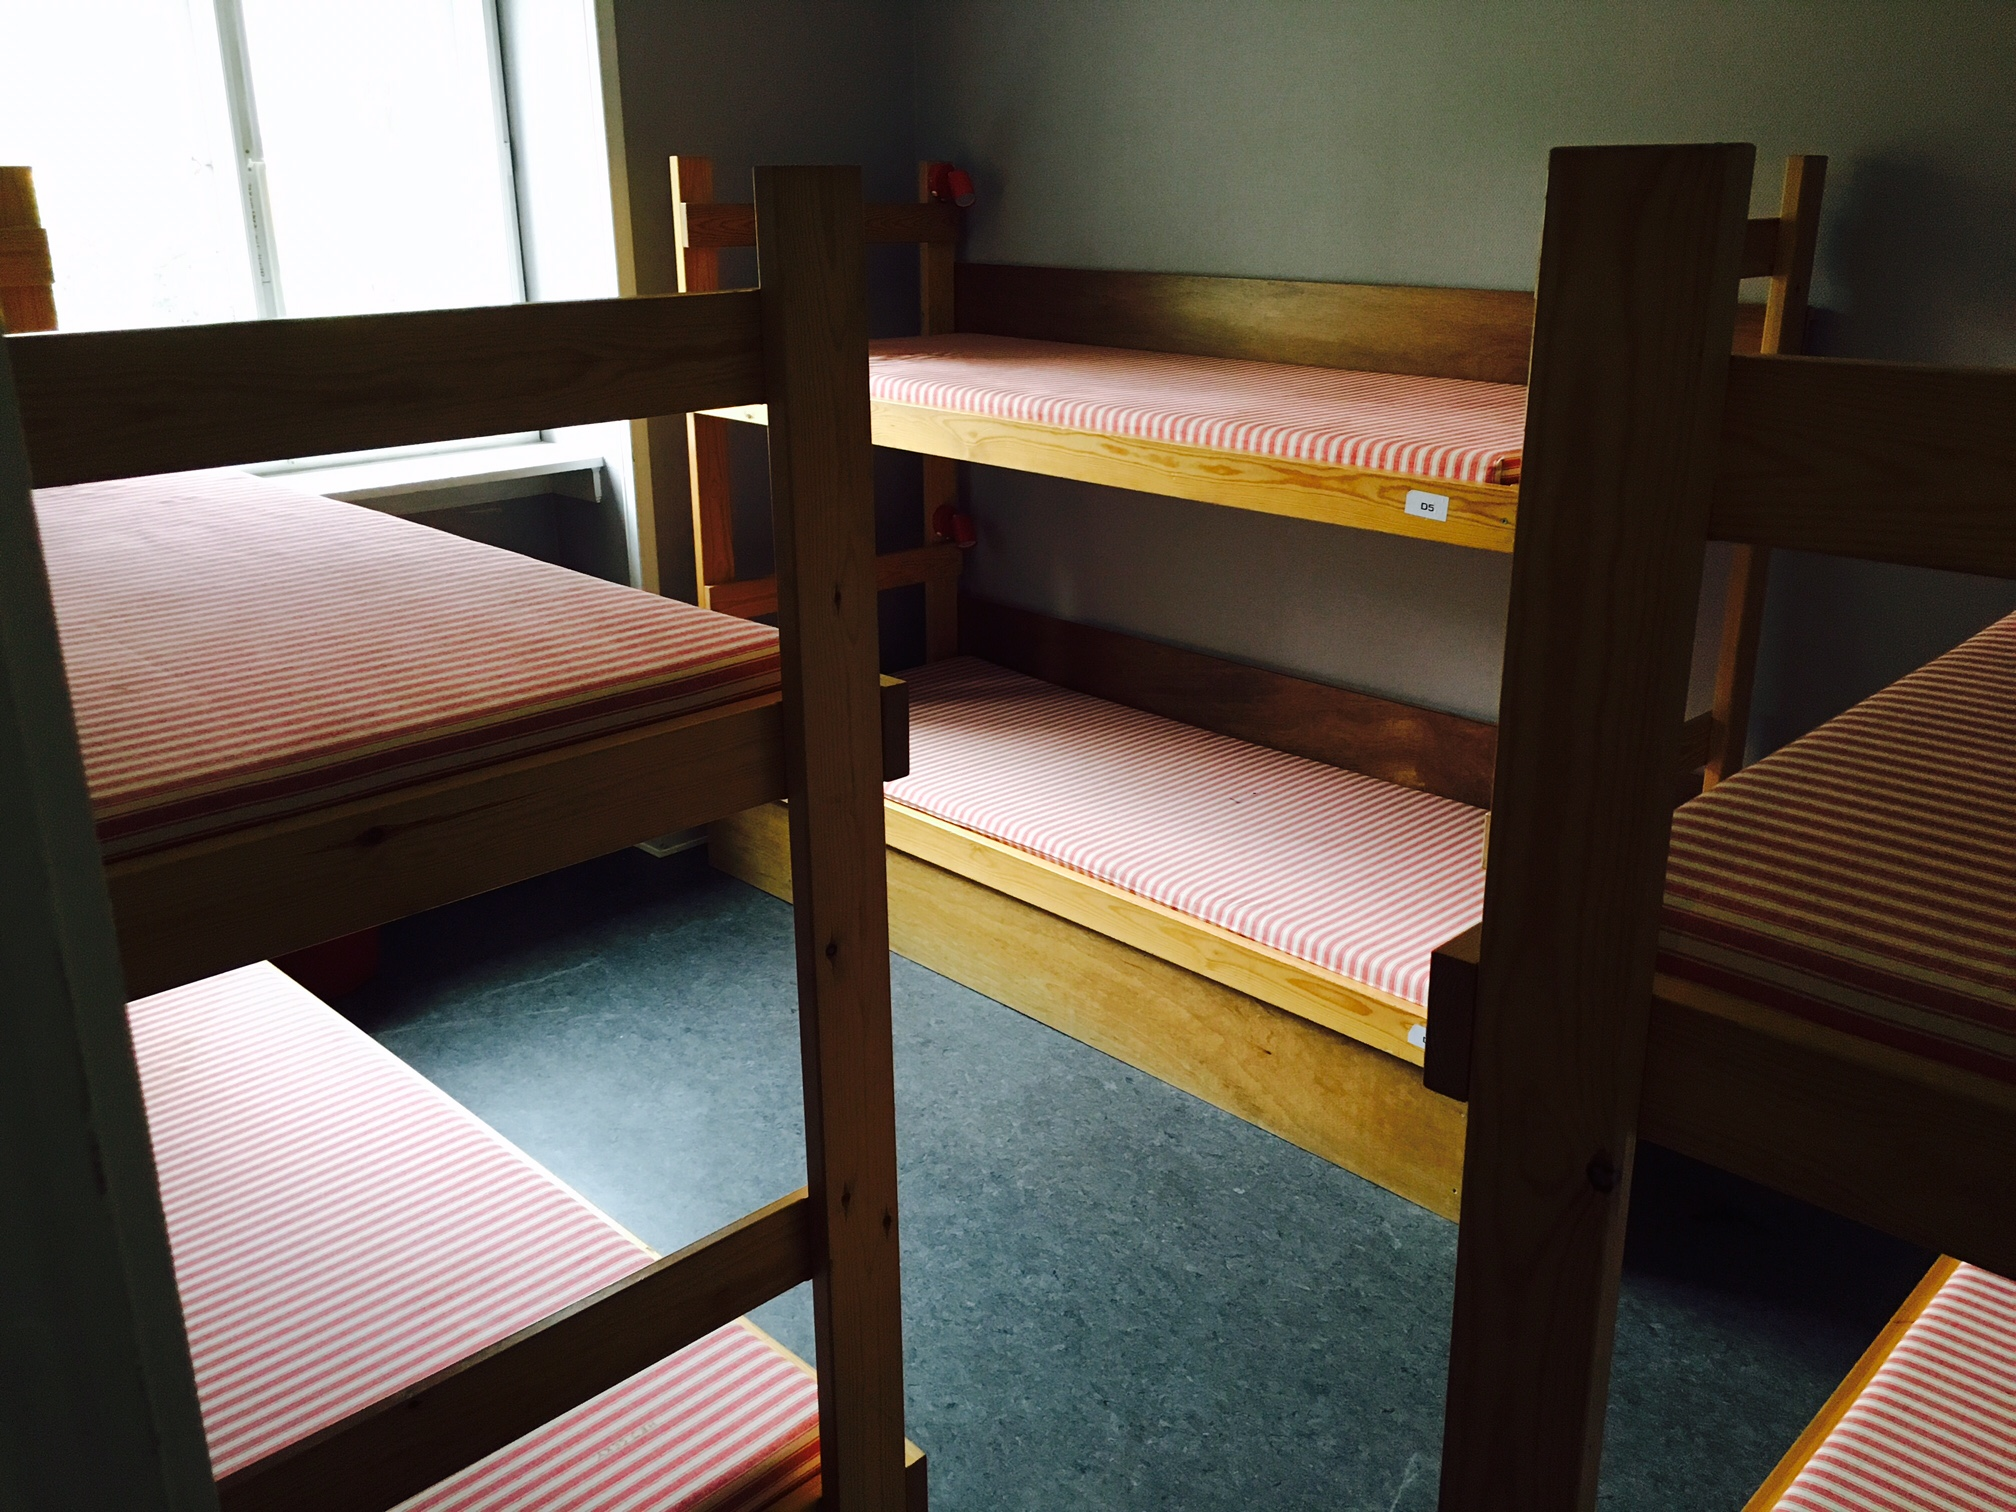 Newly renovated dorms